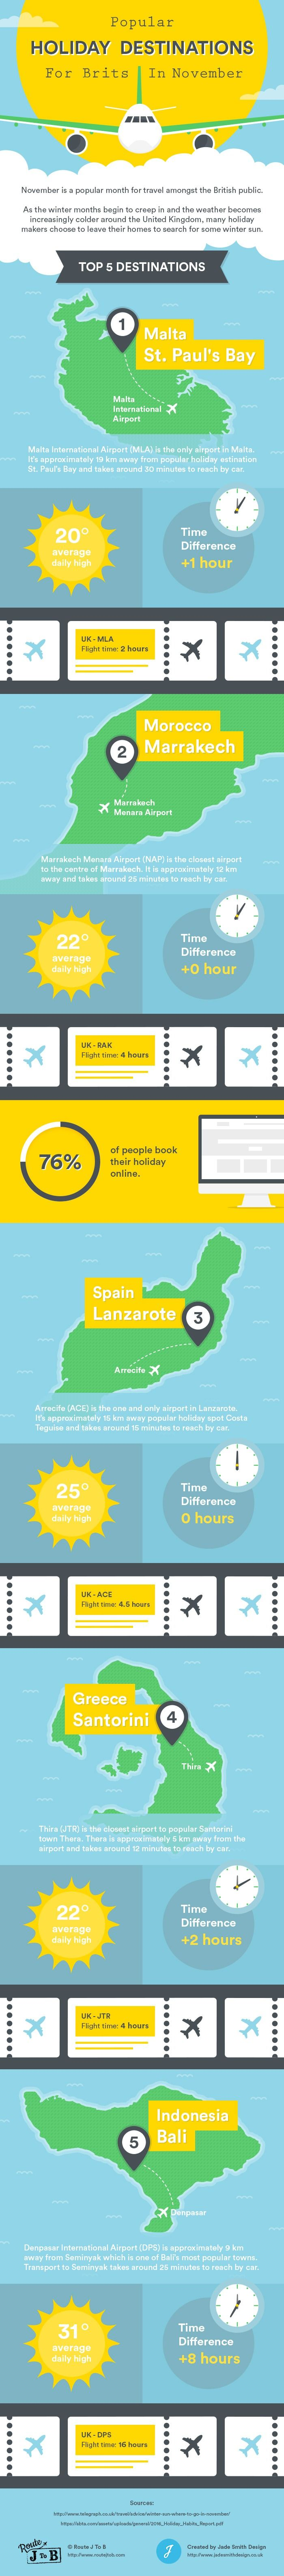 Popular Holiday Destinations For Brits In November Infographic  http://www.routejtob.com/blog/popular-holiday-destinations-for-brits-in-november/